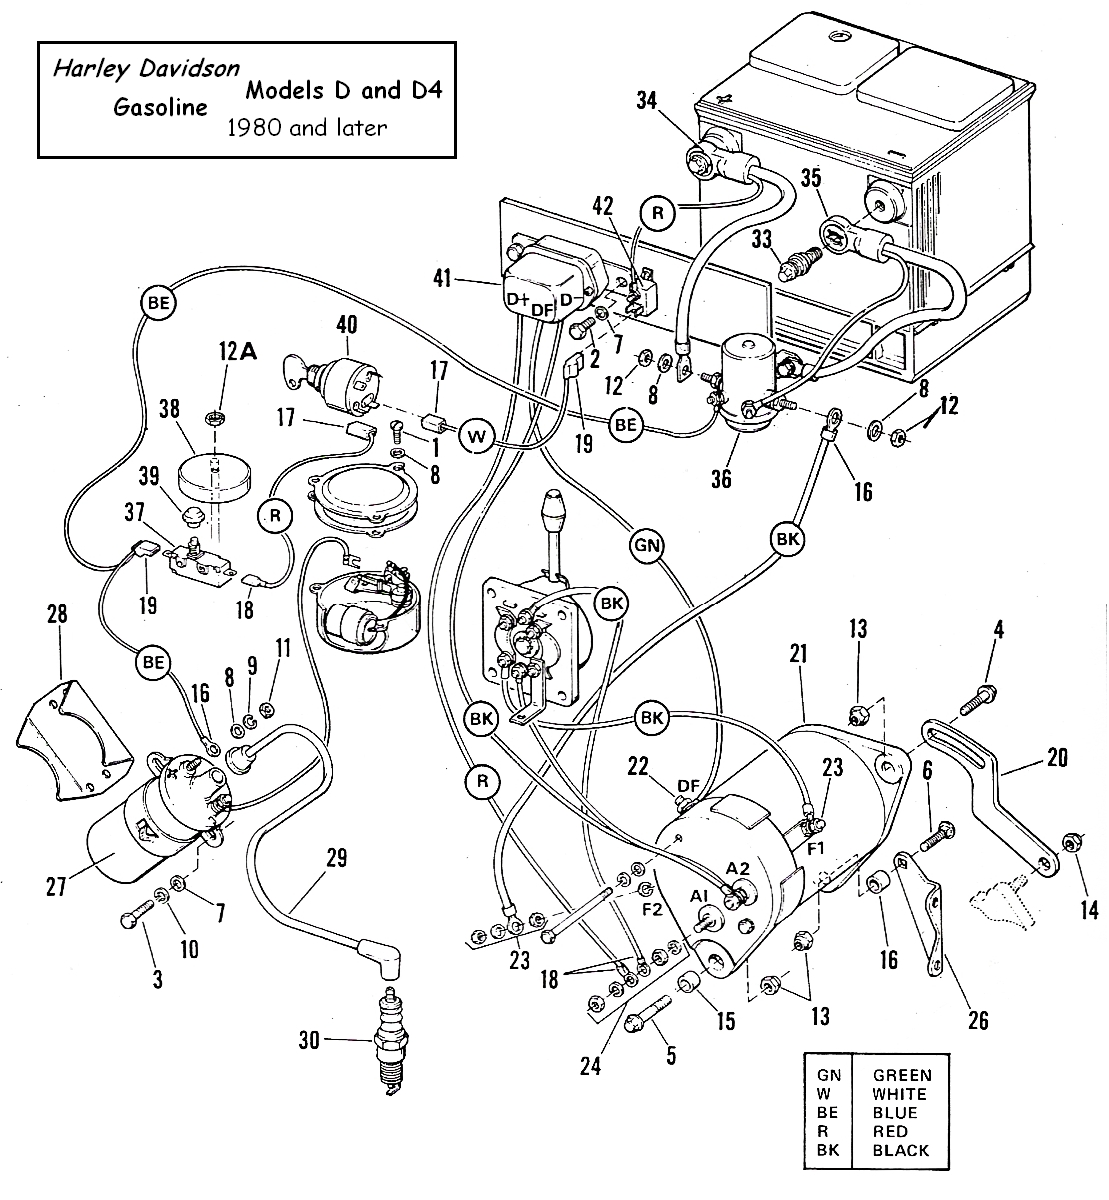 12 volt starter generator wiring diagram with 8mmqj Gas Harley 82 Harley D3dx4 Gas Cart When Press on 2047402 Bridgeport Dropping 460v 230v further 3b Diesel Swap Alternator Wiring further 12v Source Confusion 16106 further Viewtopic likewise 8mmqj Gas Harley 82 Harley D3dx4 Gas Cart When Press.